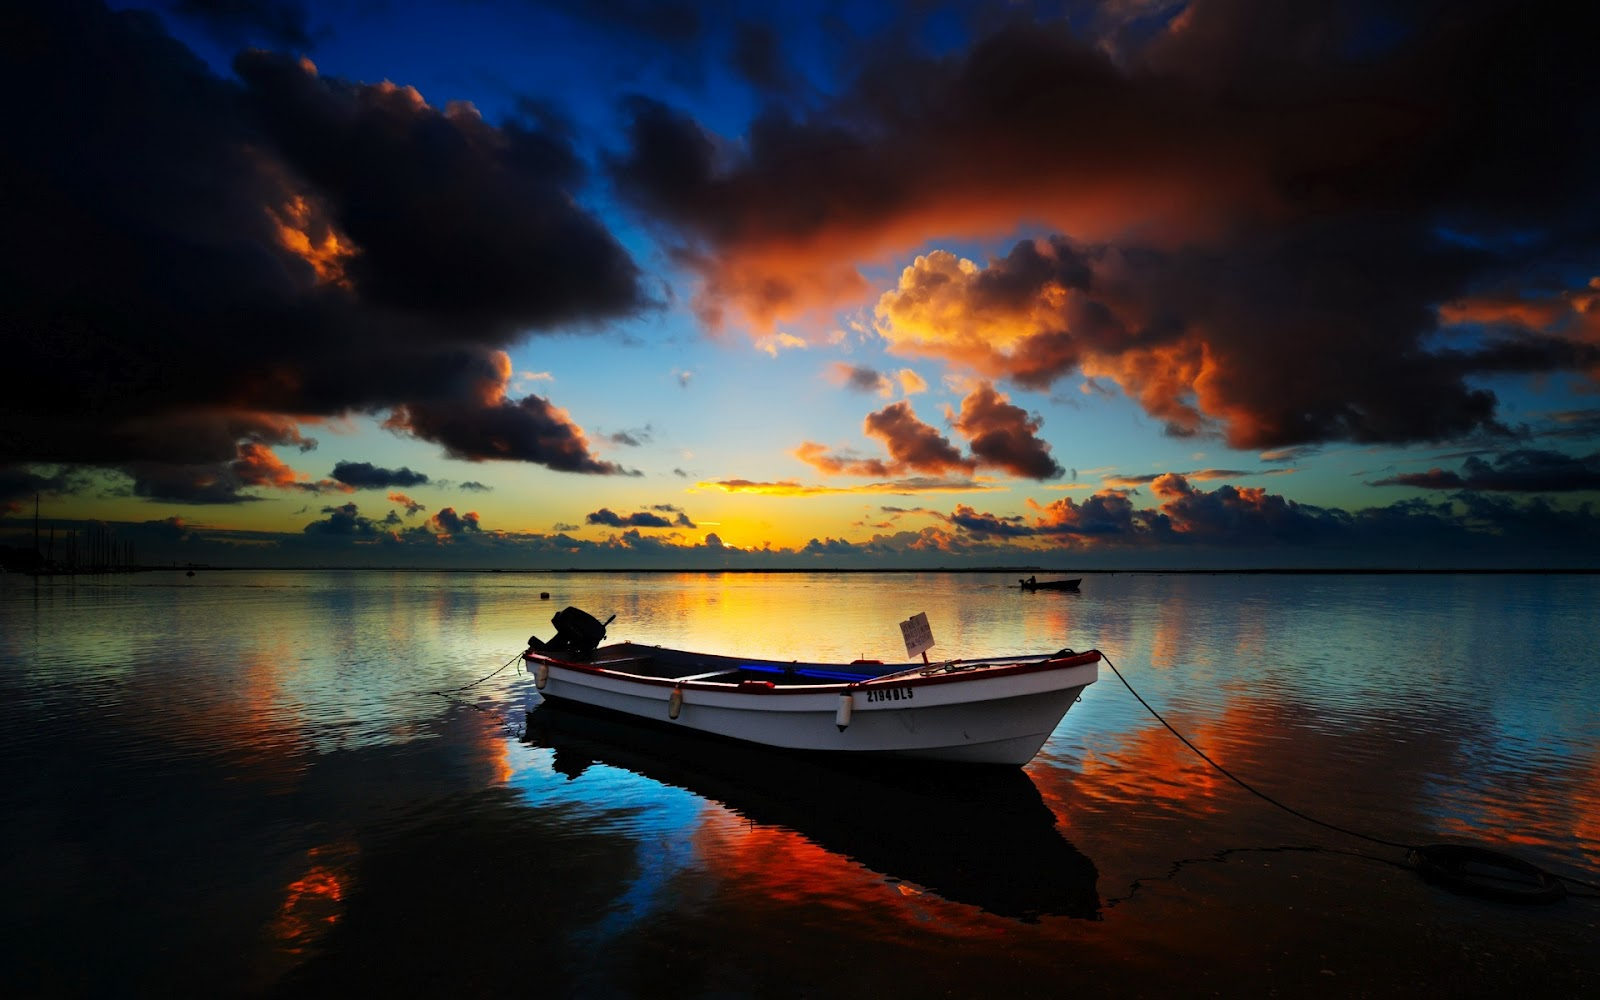 http://2.bp.blogspot.com/-BMtfoS5Jngw/UAa-pm9DMbI/AAAAAAAACqQ/W2QcDhM9Q_o/s1600/peaceful-sunset-photo-1920x1200-1002105.jpg